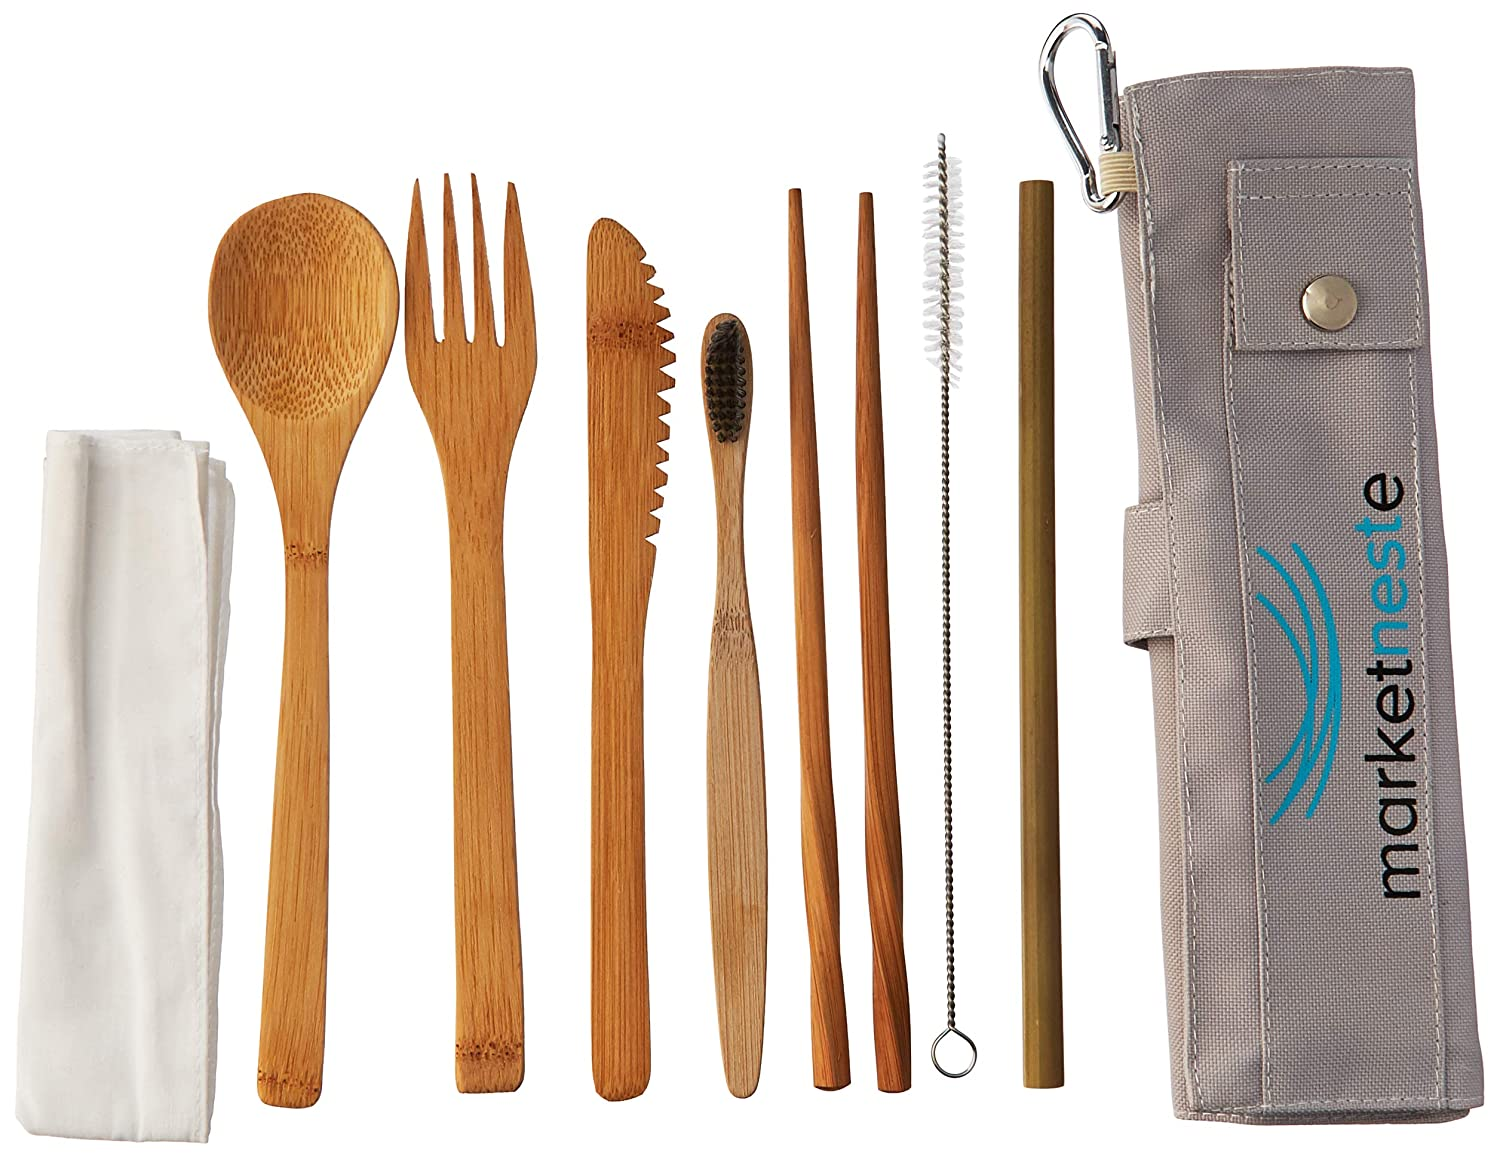 Marketneste Portable Bamboo Cutlery Set with a Travel Holder | Utensils for Camping, Picnics or Eating Out | Natural, Eco Friendly, Non Toxic, Heavy Duty and Reusable Bamboo Silverware and Dining Set